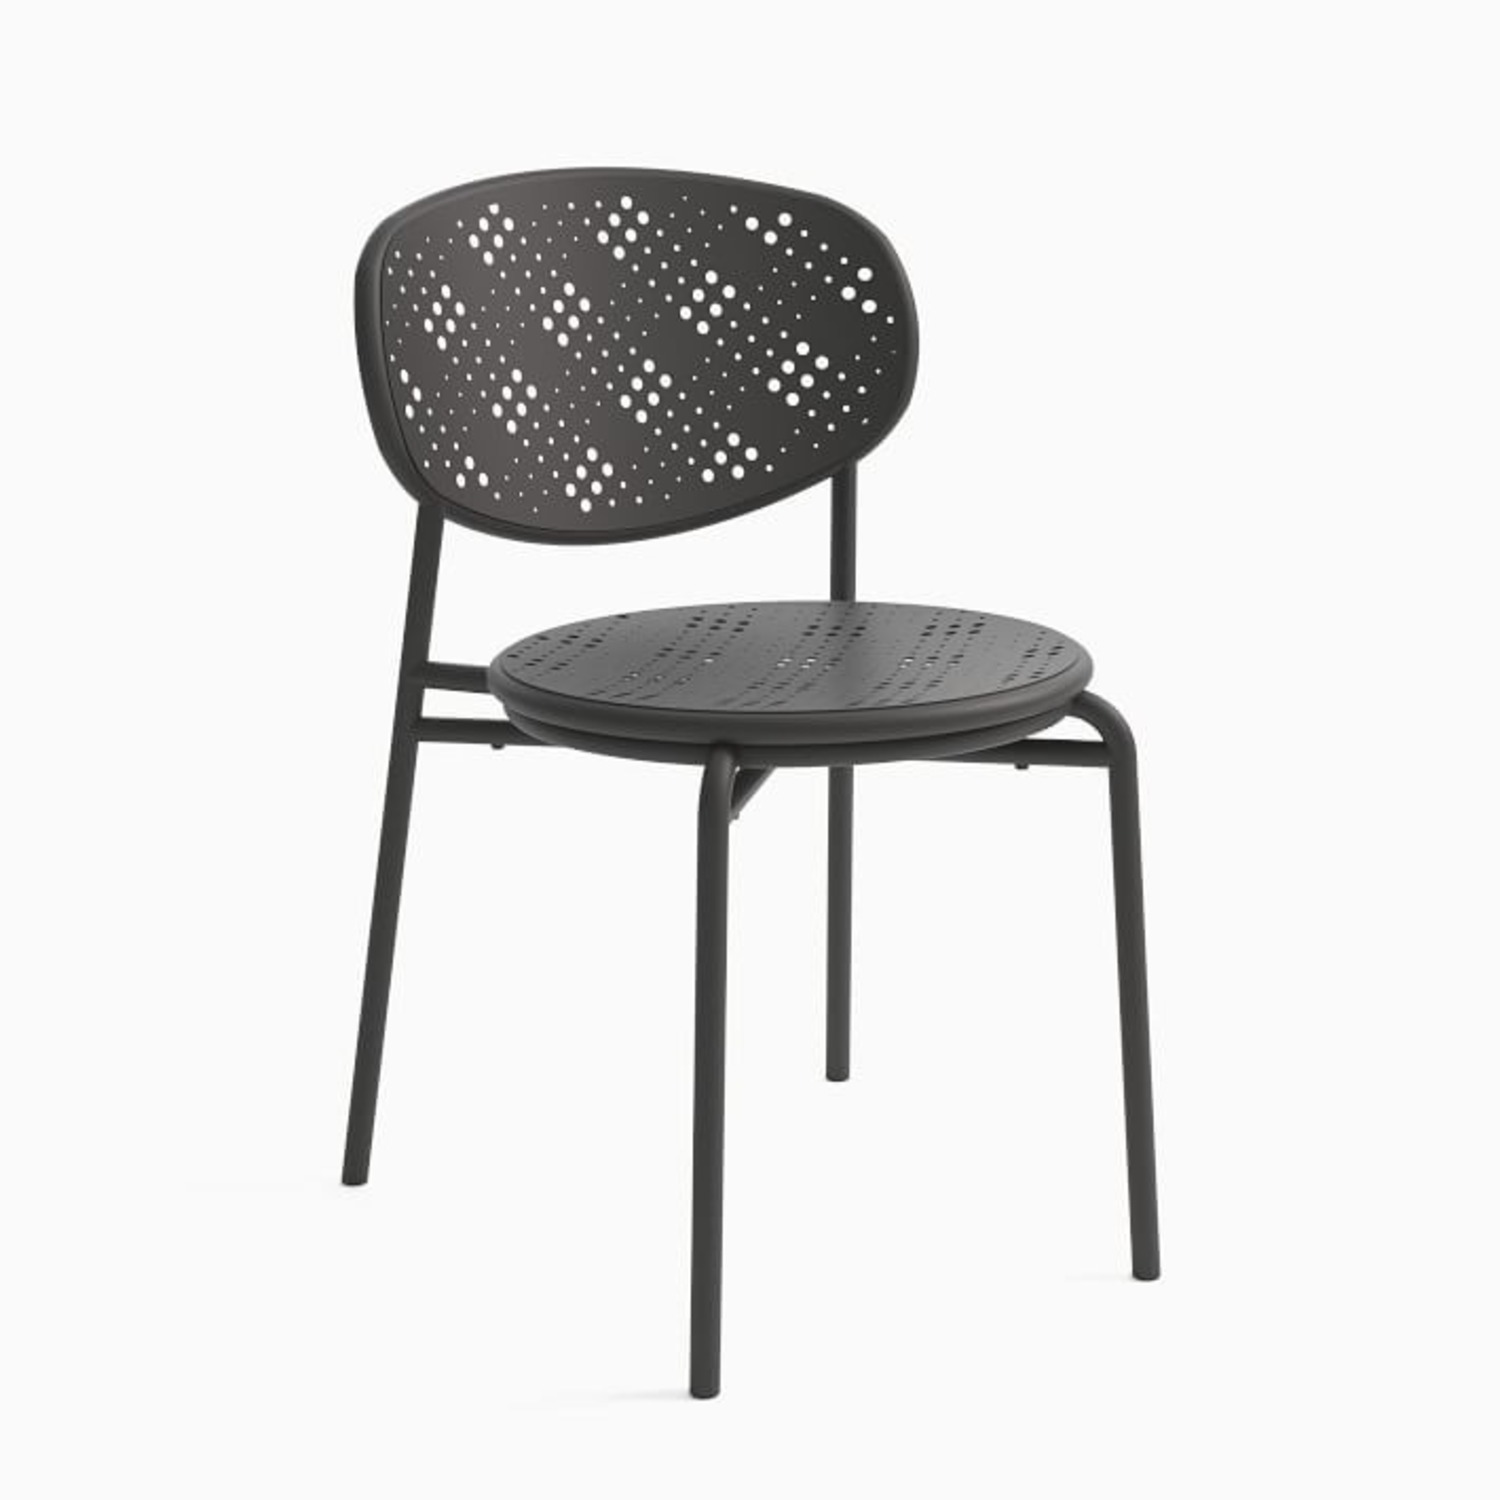 West Elm Cagney Outdoor Stacking Chair, Peppercorn - image-2